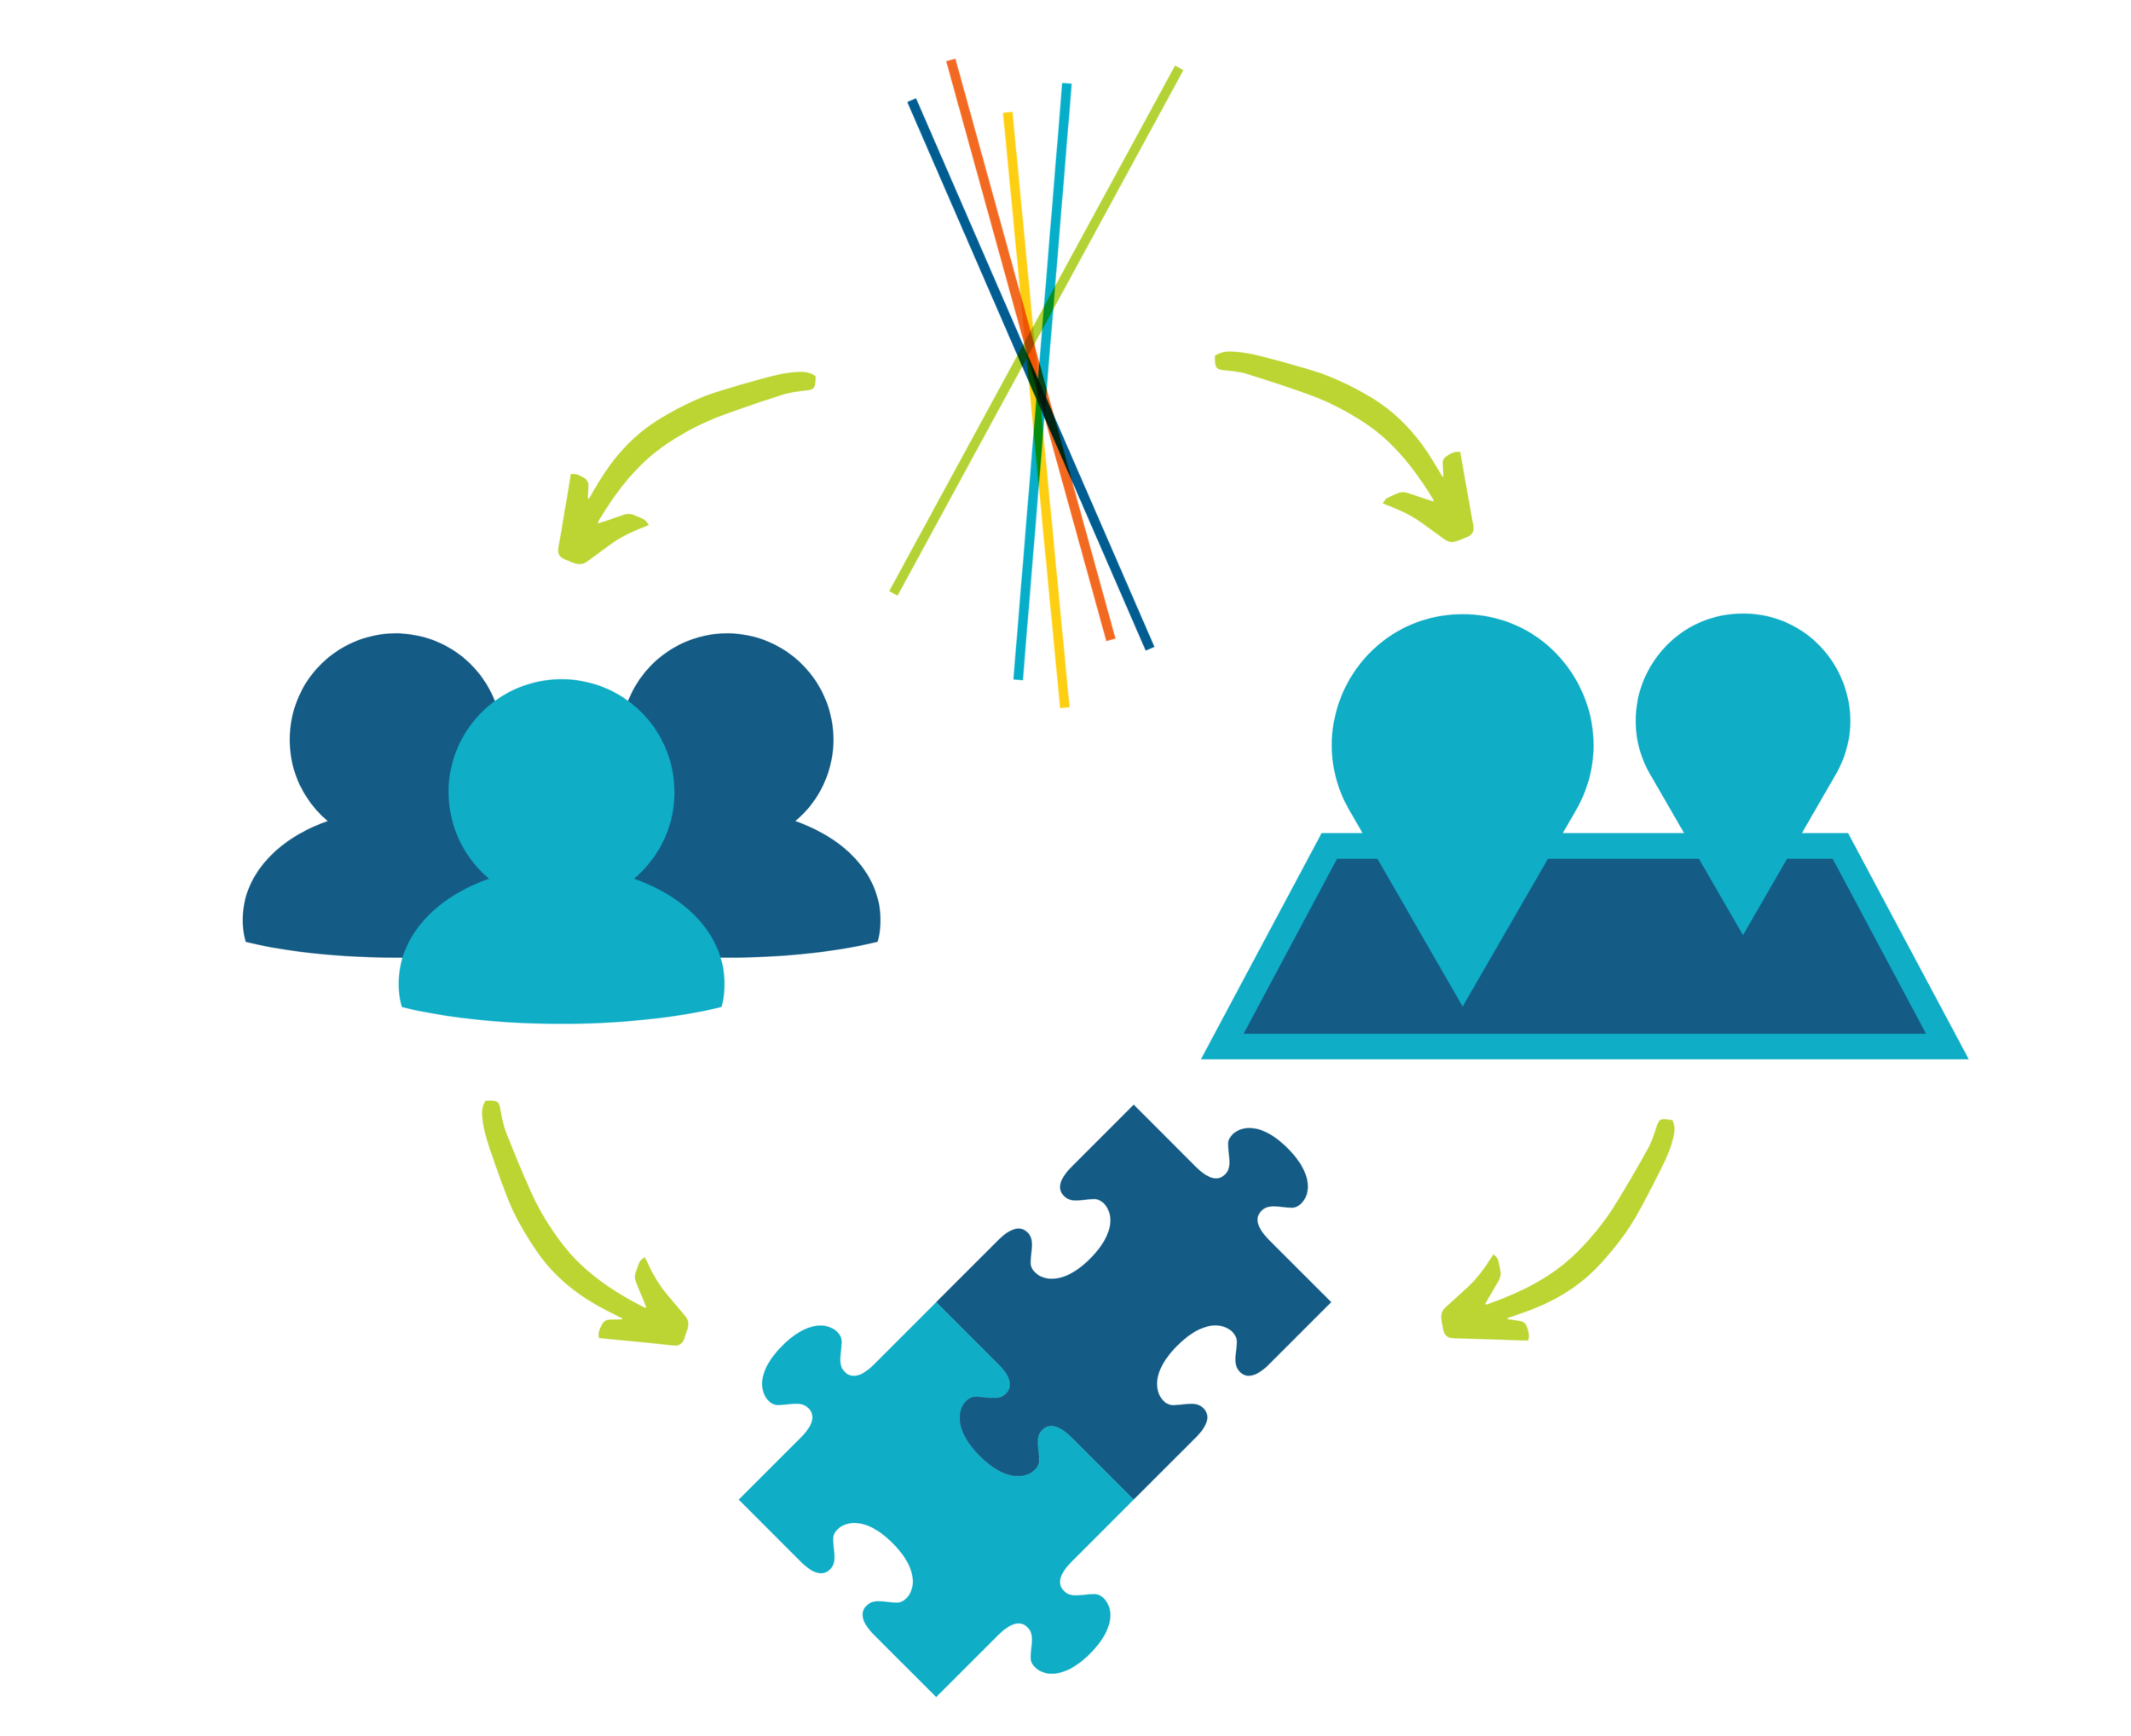 The matching process - Unlike other Fellowships, IJC recruits both Fellows and host organizations. IJC matches selected Fellows with our partnering host organizations based on the applicant's experience and interest, gaps in services within the community, location preferences, and partnering host organizations' needs.